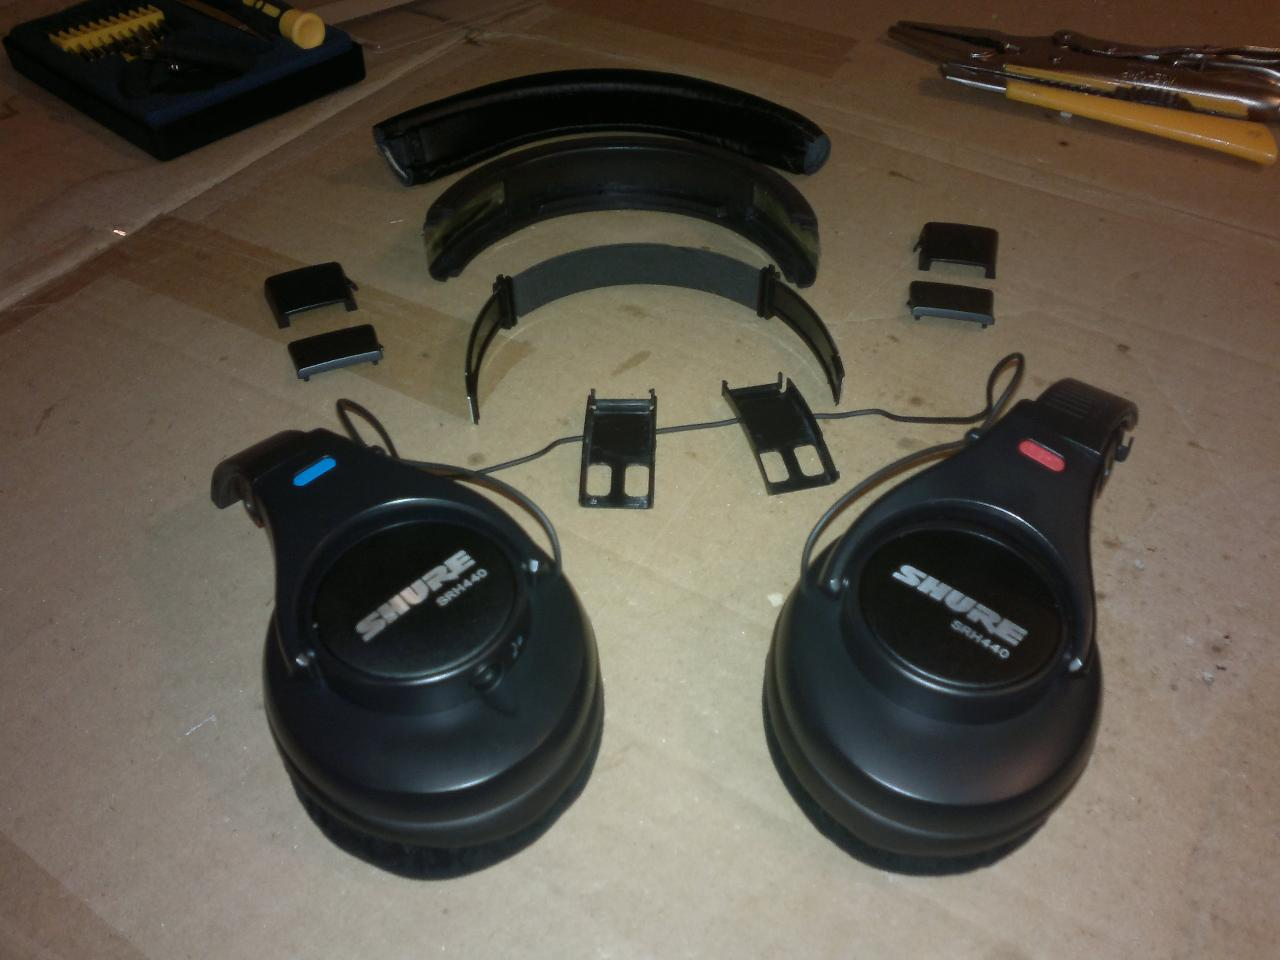 Hacking SRH440 headband, step #1. Taking everything apart. I used a sharp knife to cut one of...